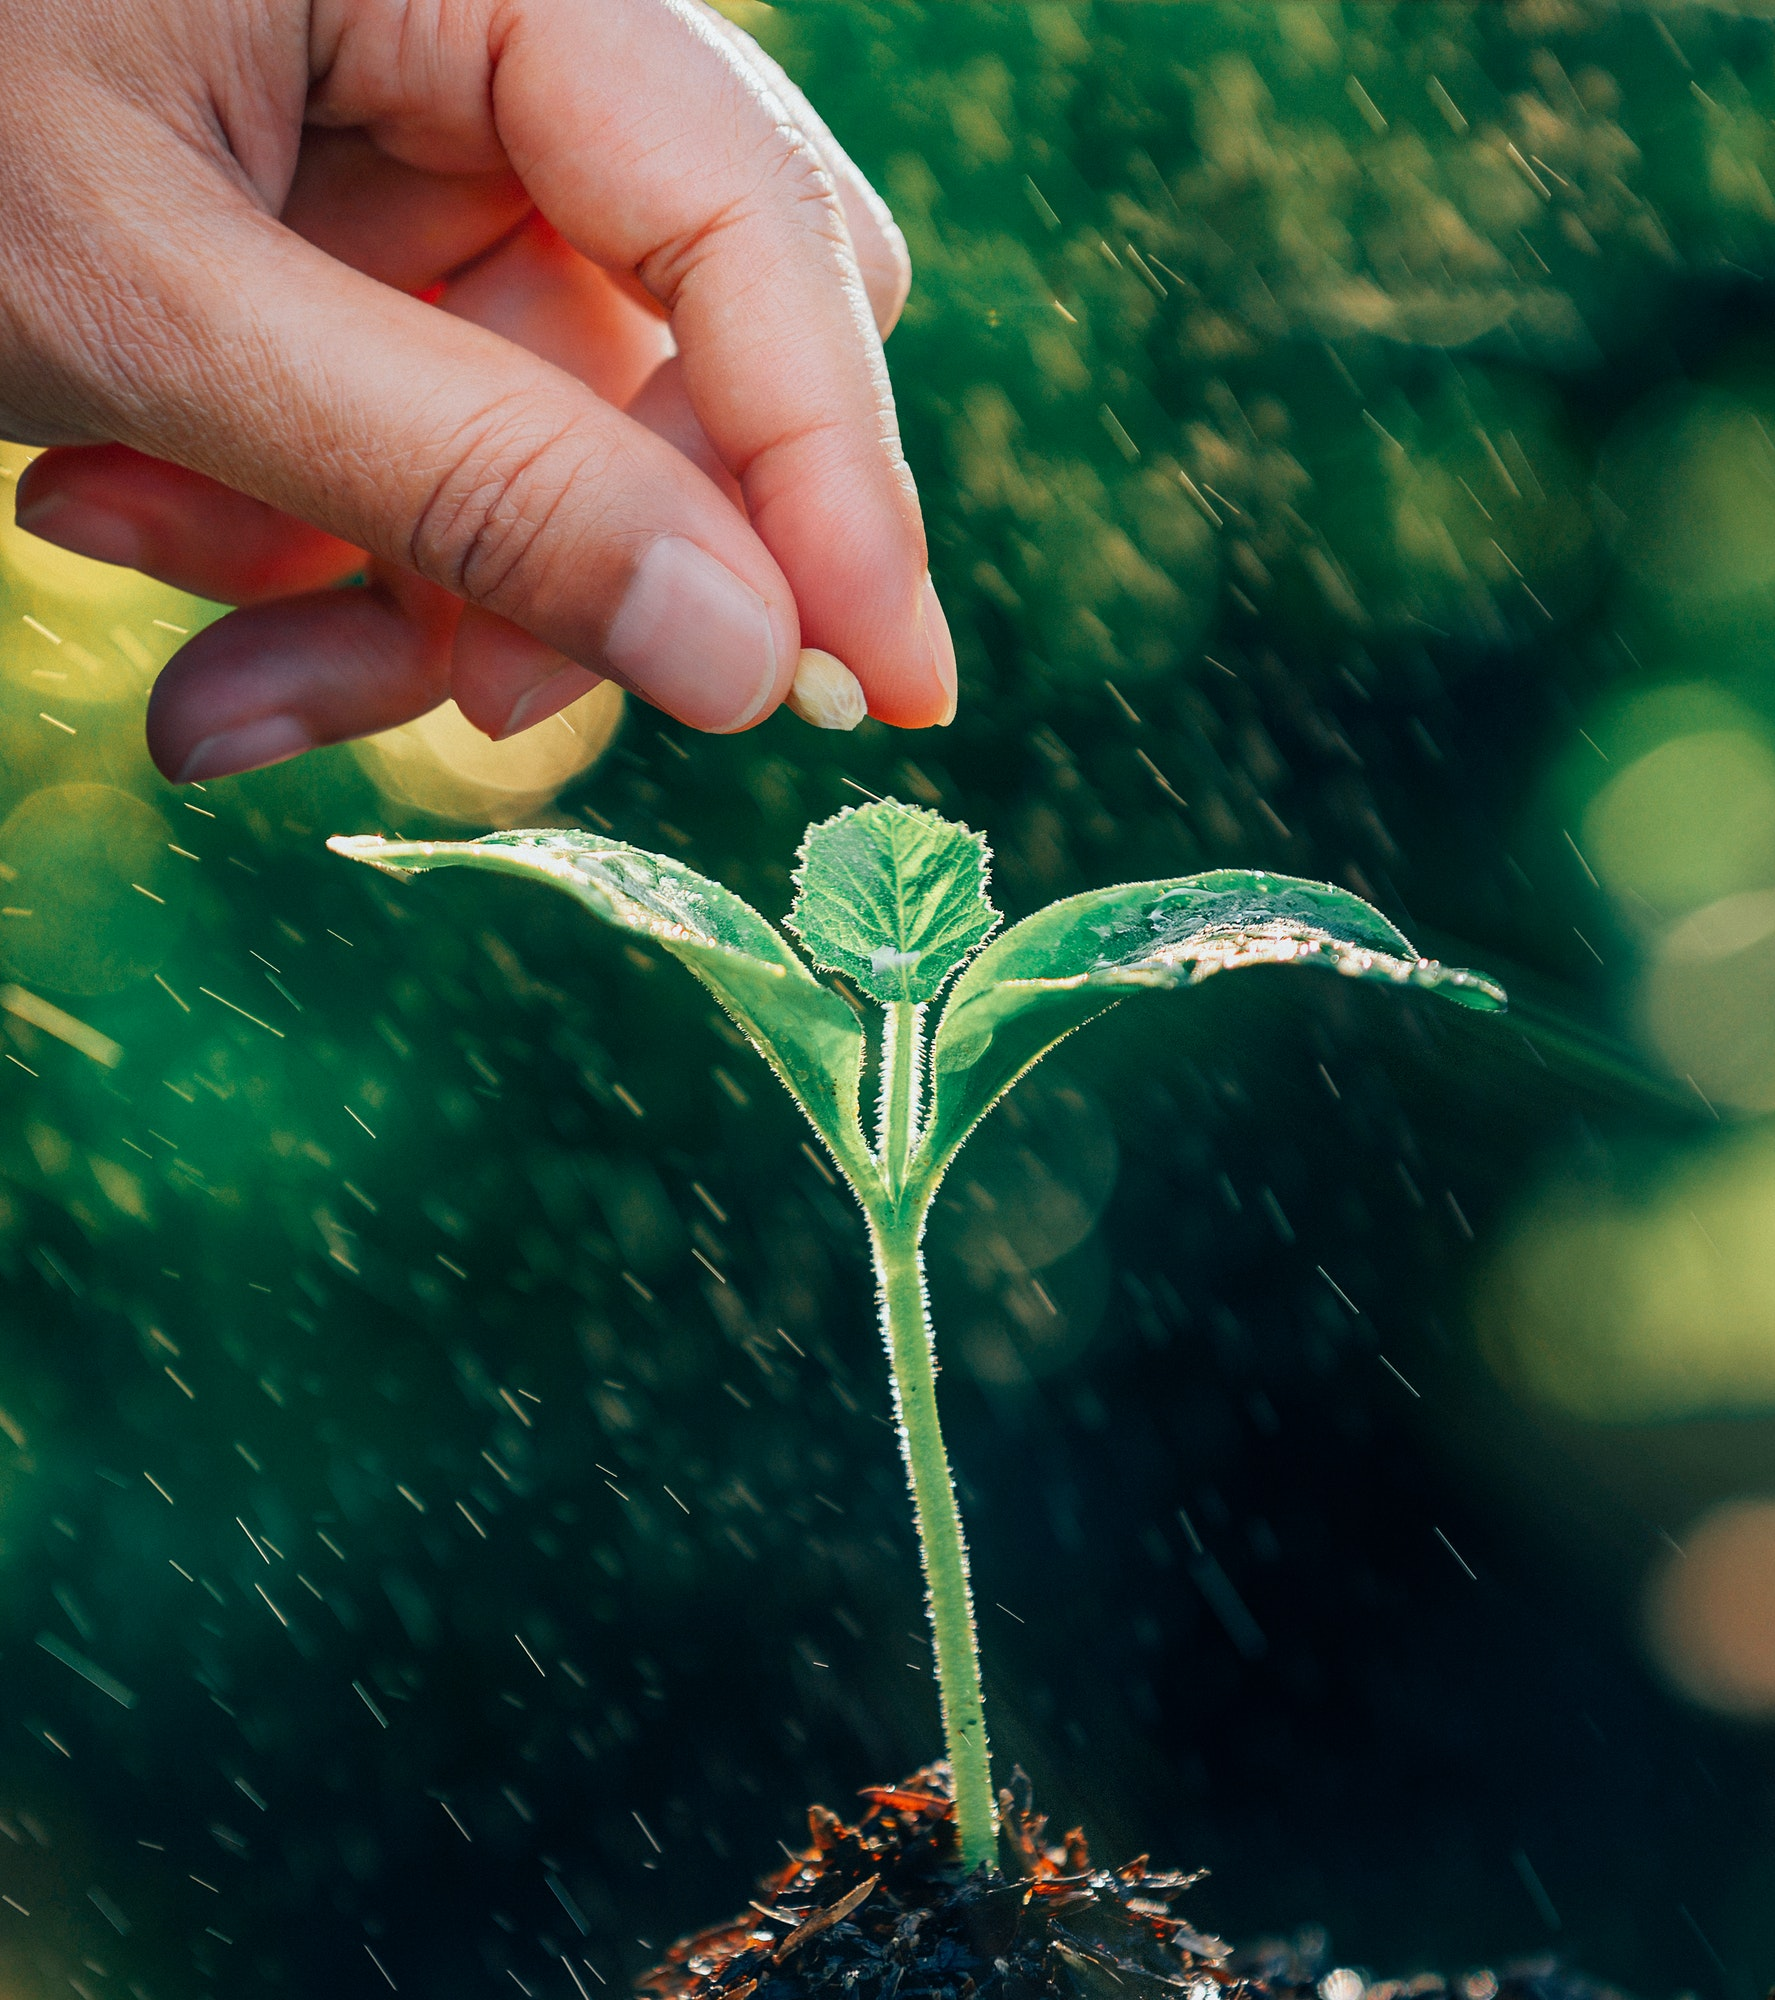 hand planting a seed in soil